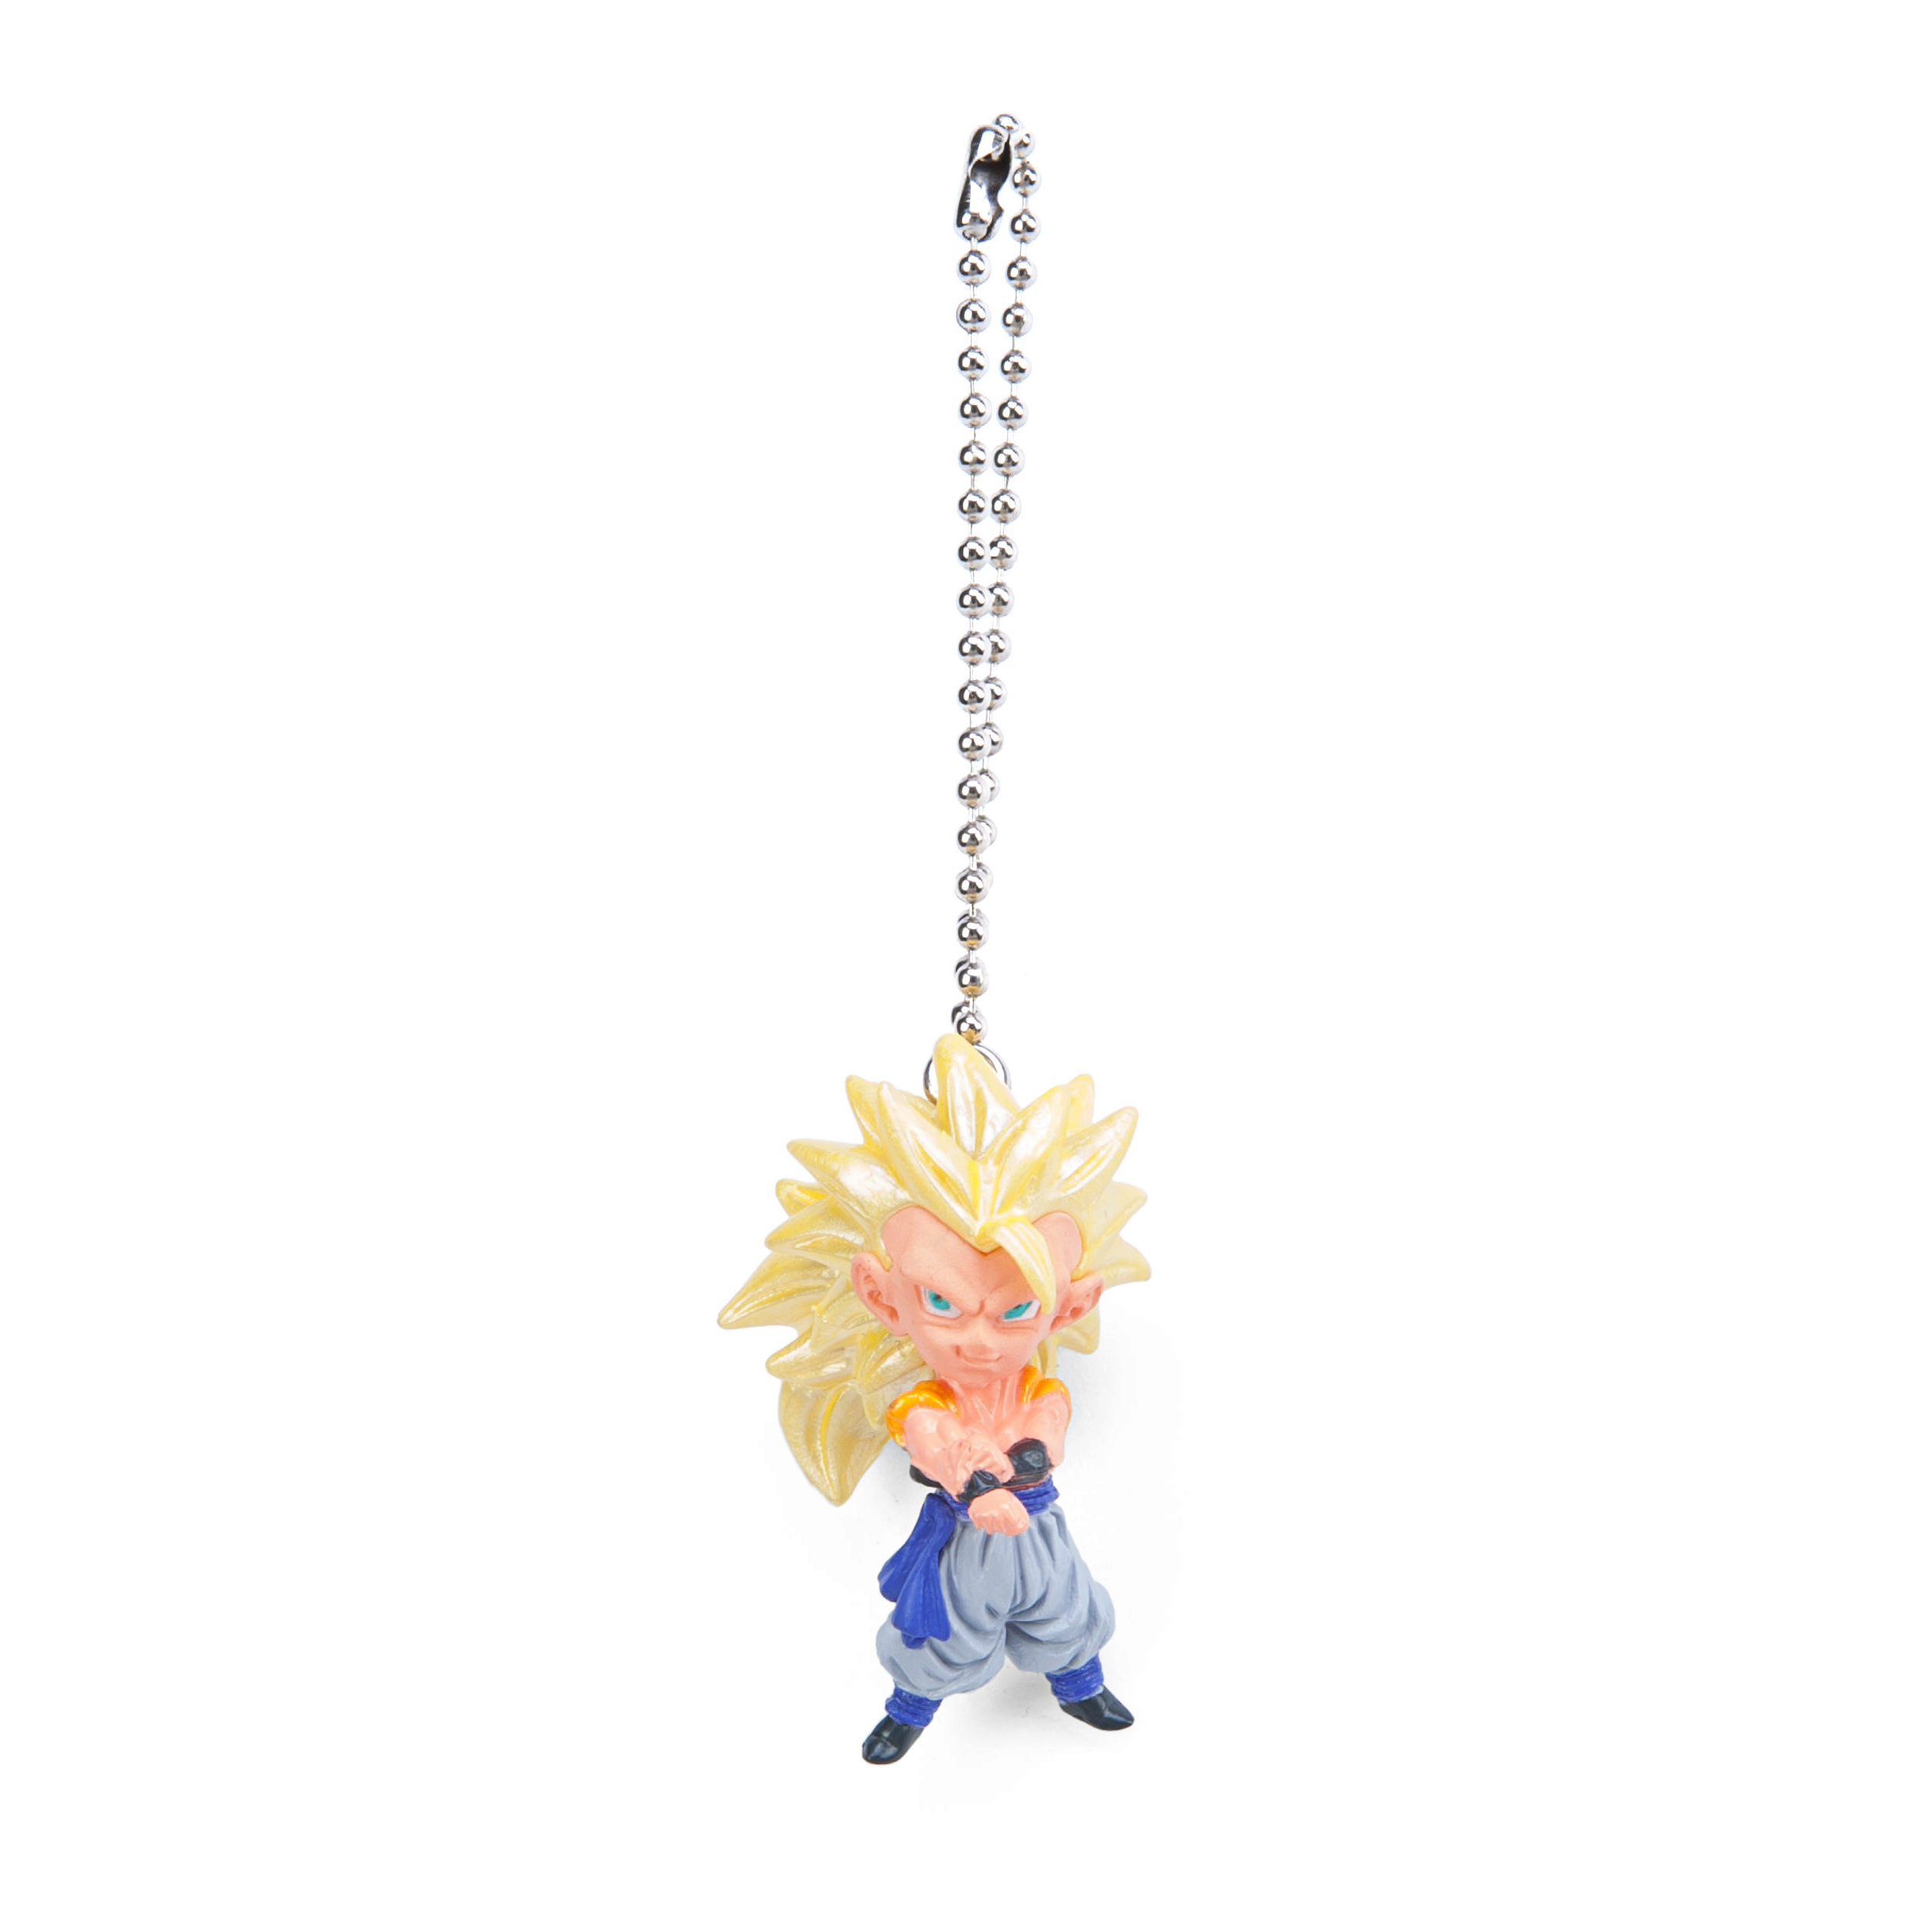 Dragon Ball Z Kai UDM Burst 14 Super Saiyan 3 Goku Figure Keychain